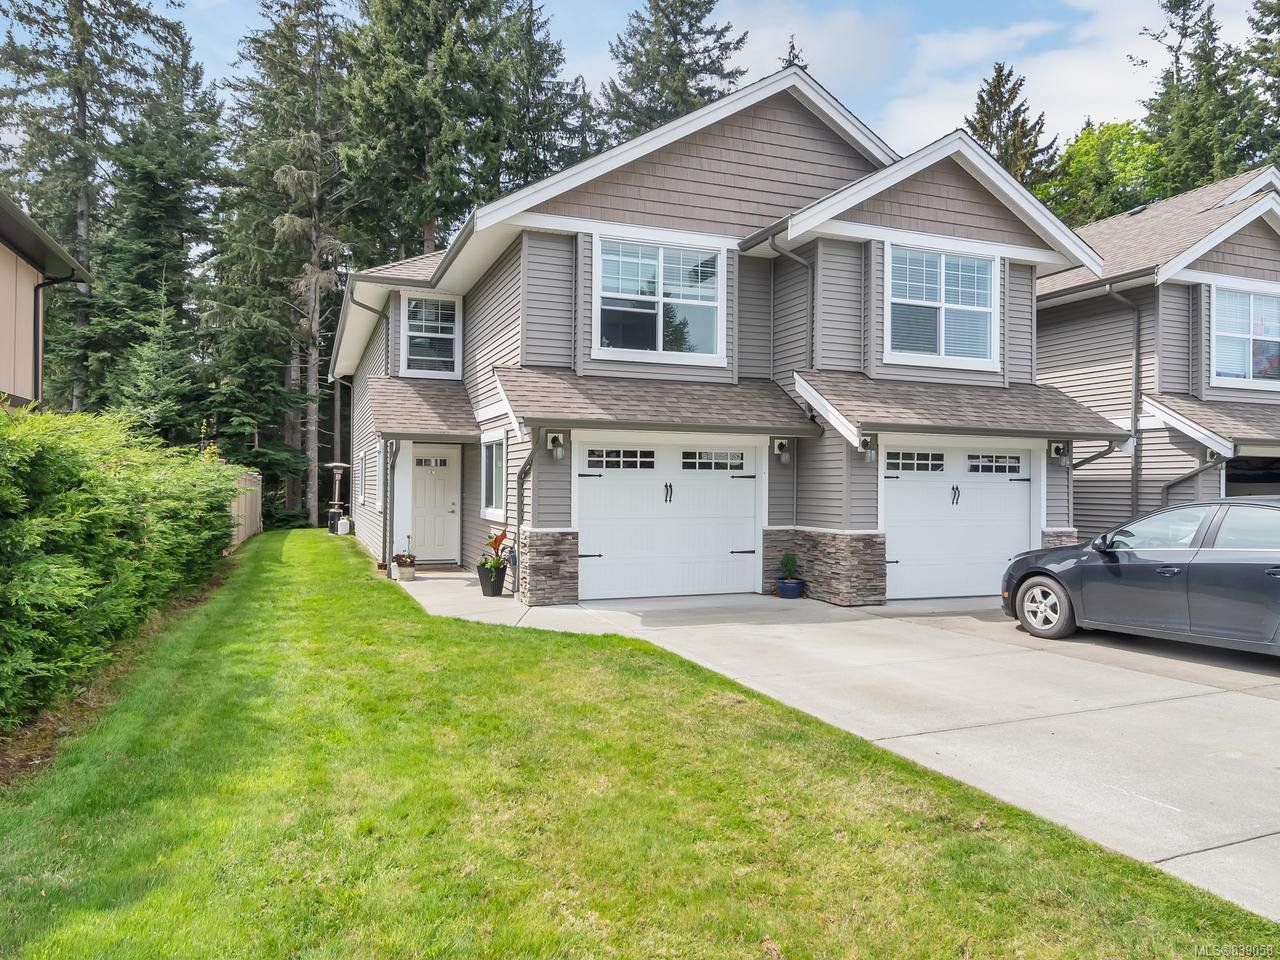 Main Photo: 8 1330 Creekside Way in CAMPBELL RIVER: CR Willow Point Row/Townhouse for sale (Campbell River)  : MLS®# 839058